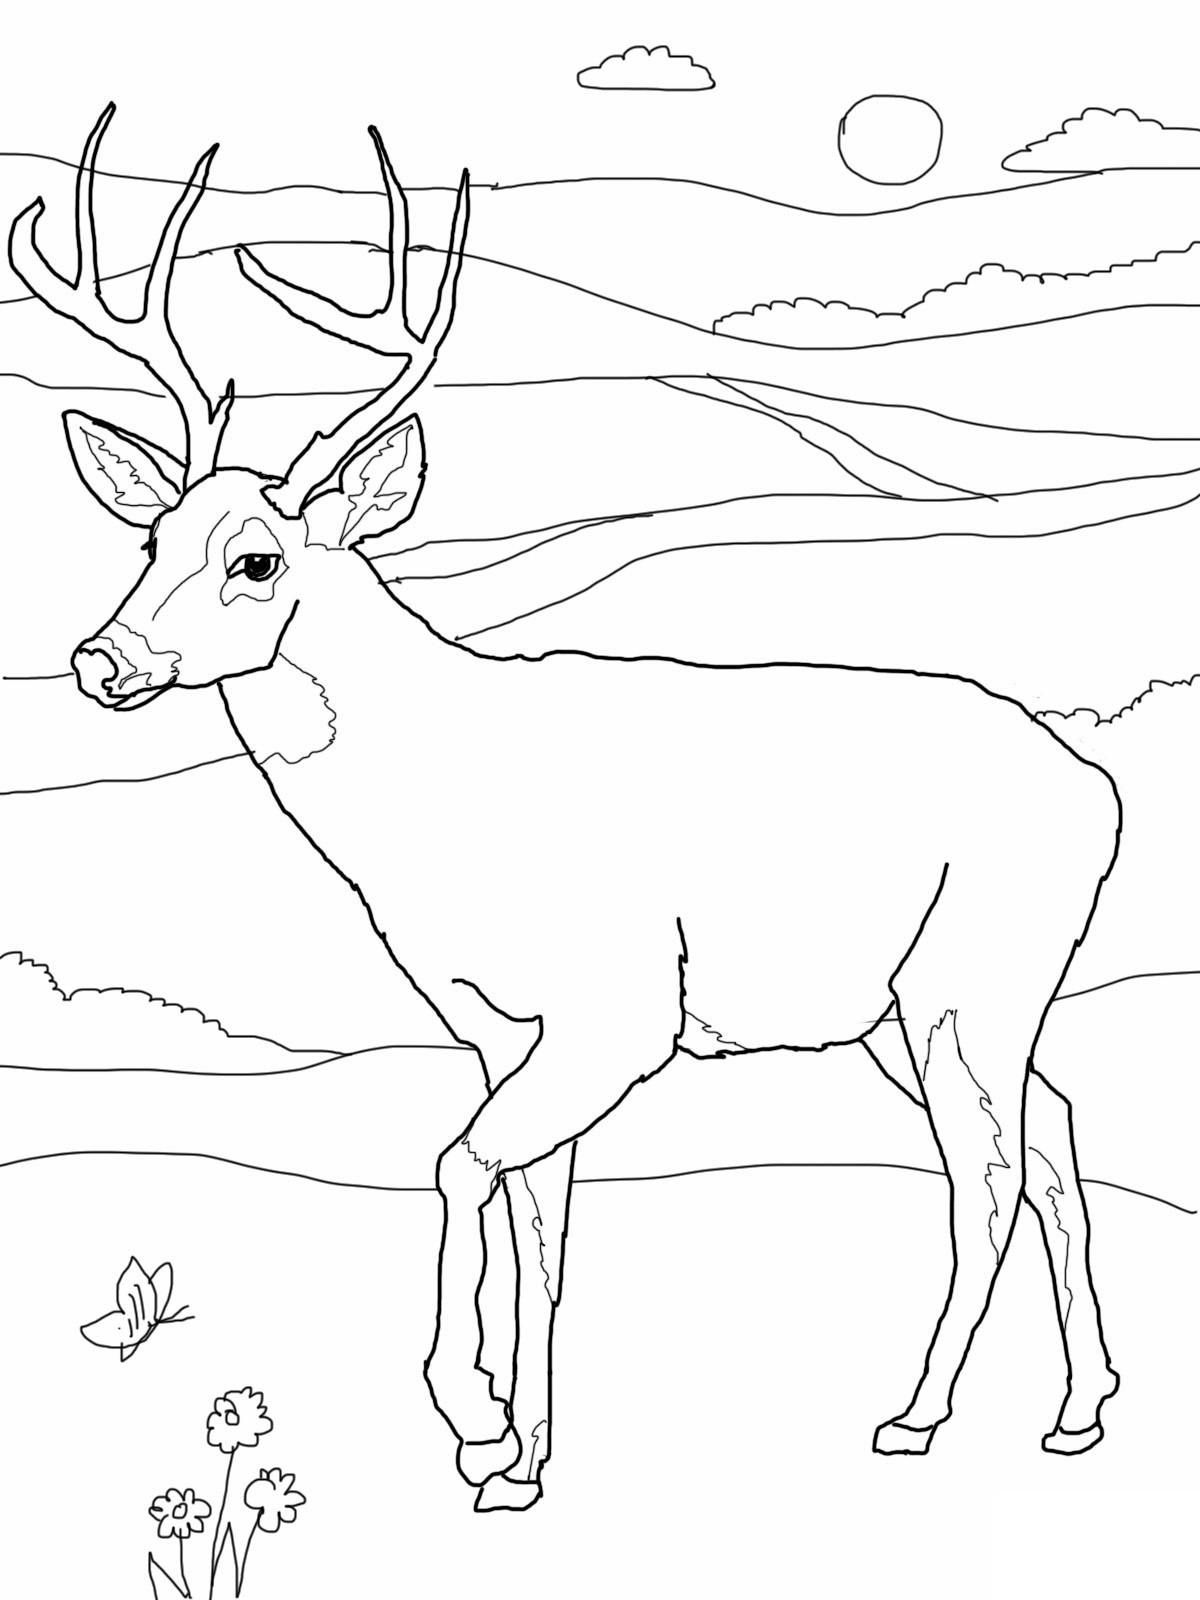 Free Printable Deer Coloring Pages For Kids Deer Printable Coloring Pages